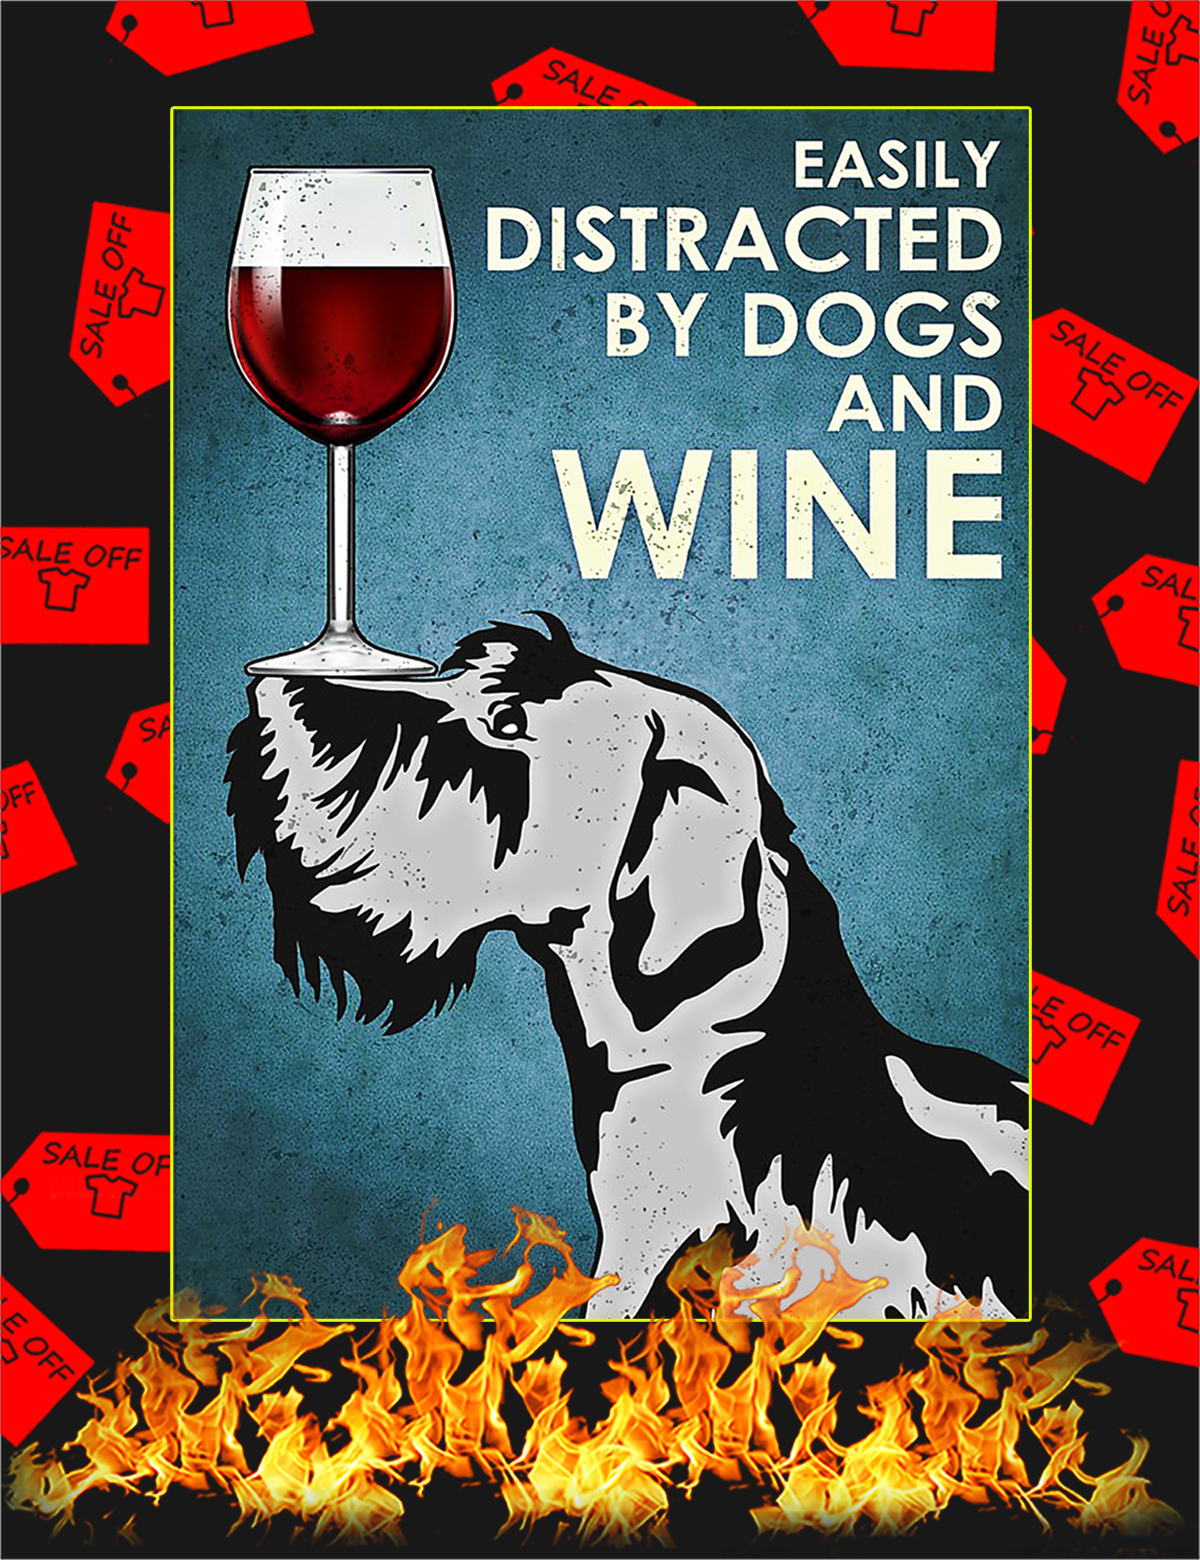 Miniature schnauzer Easily distracted by dogs and wine poster - A1